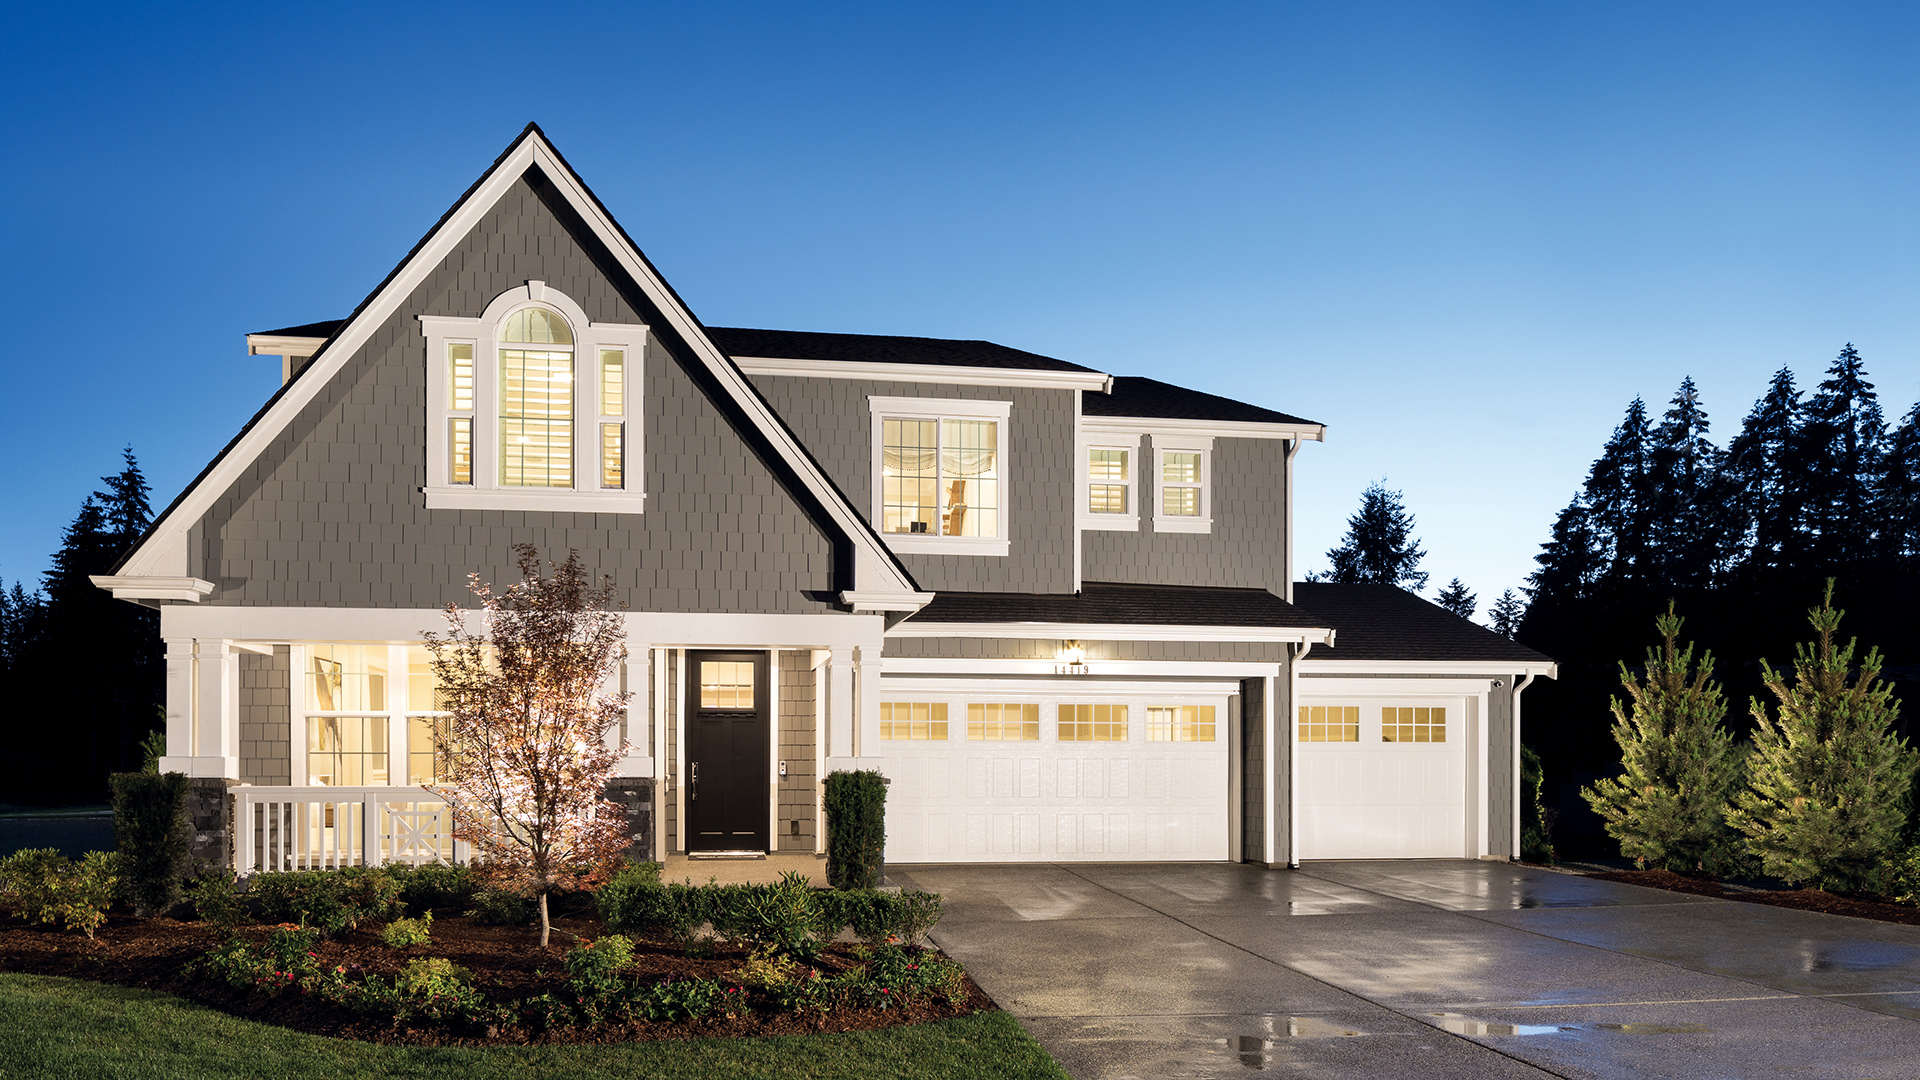 Renton Wa New Construction Homes Cedarcroft